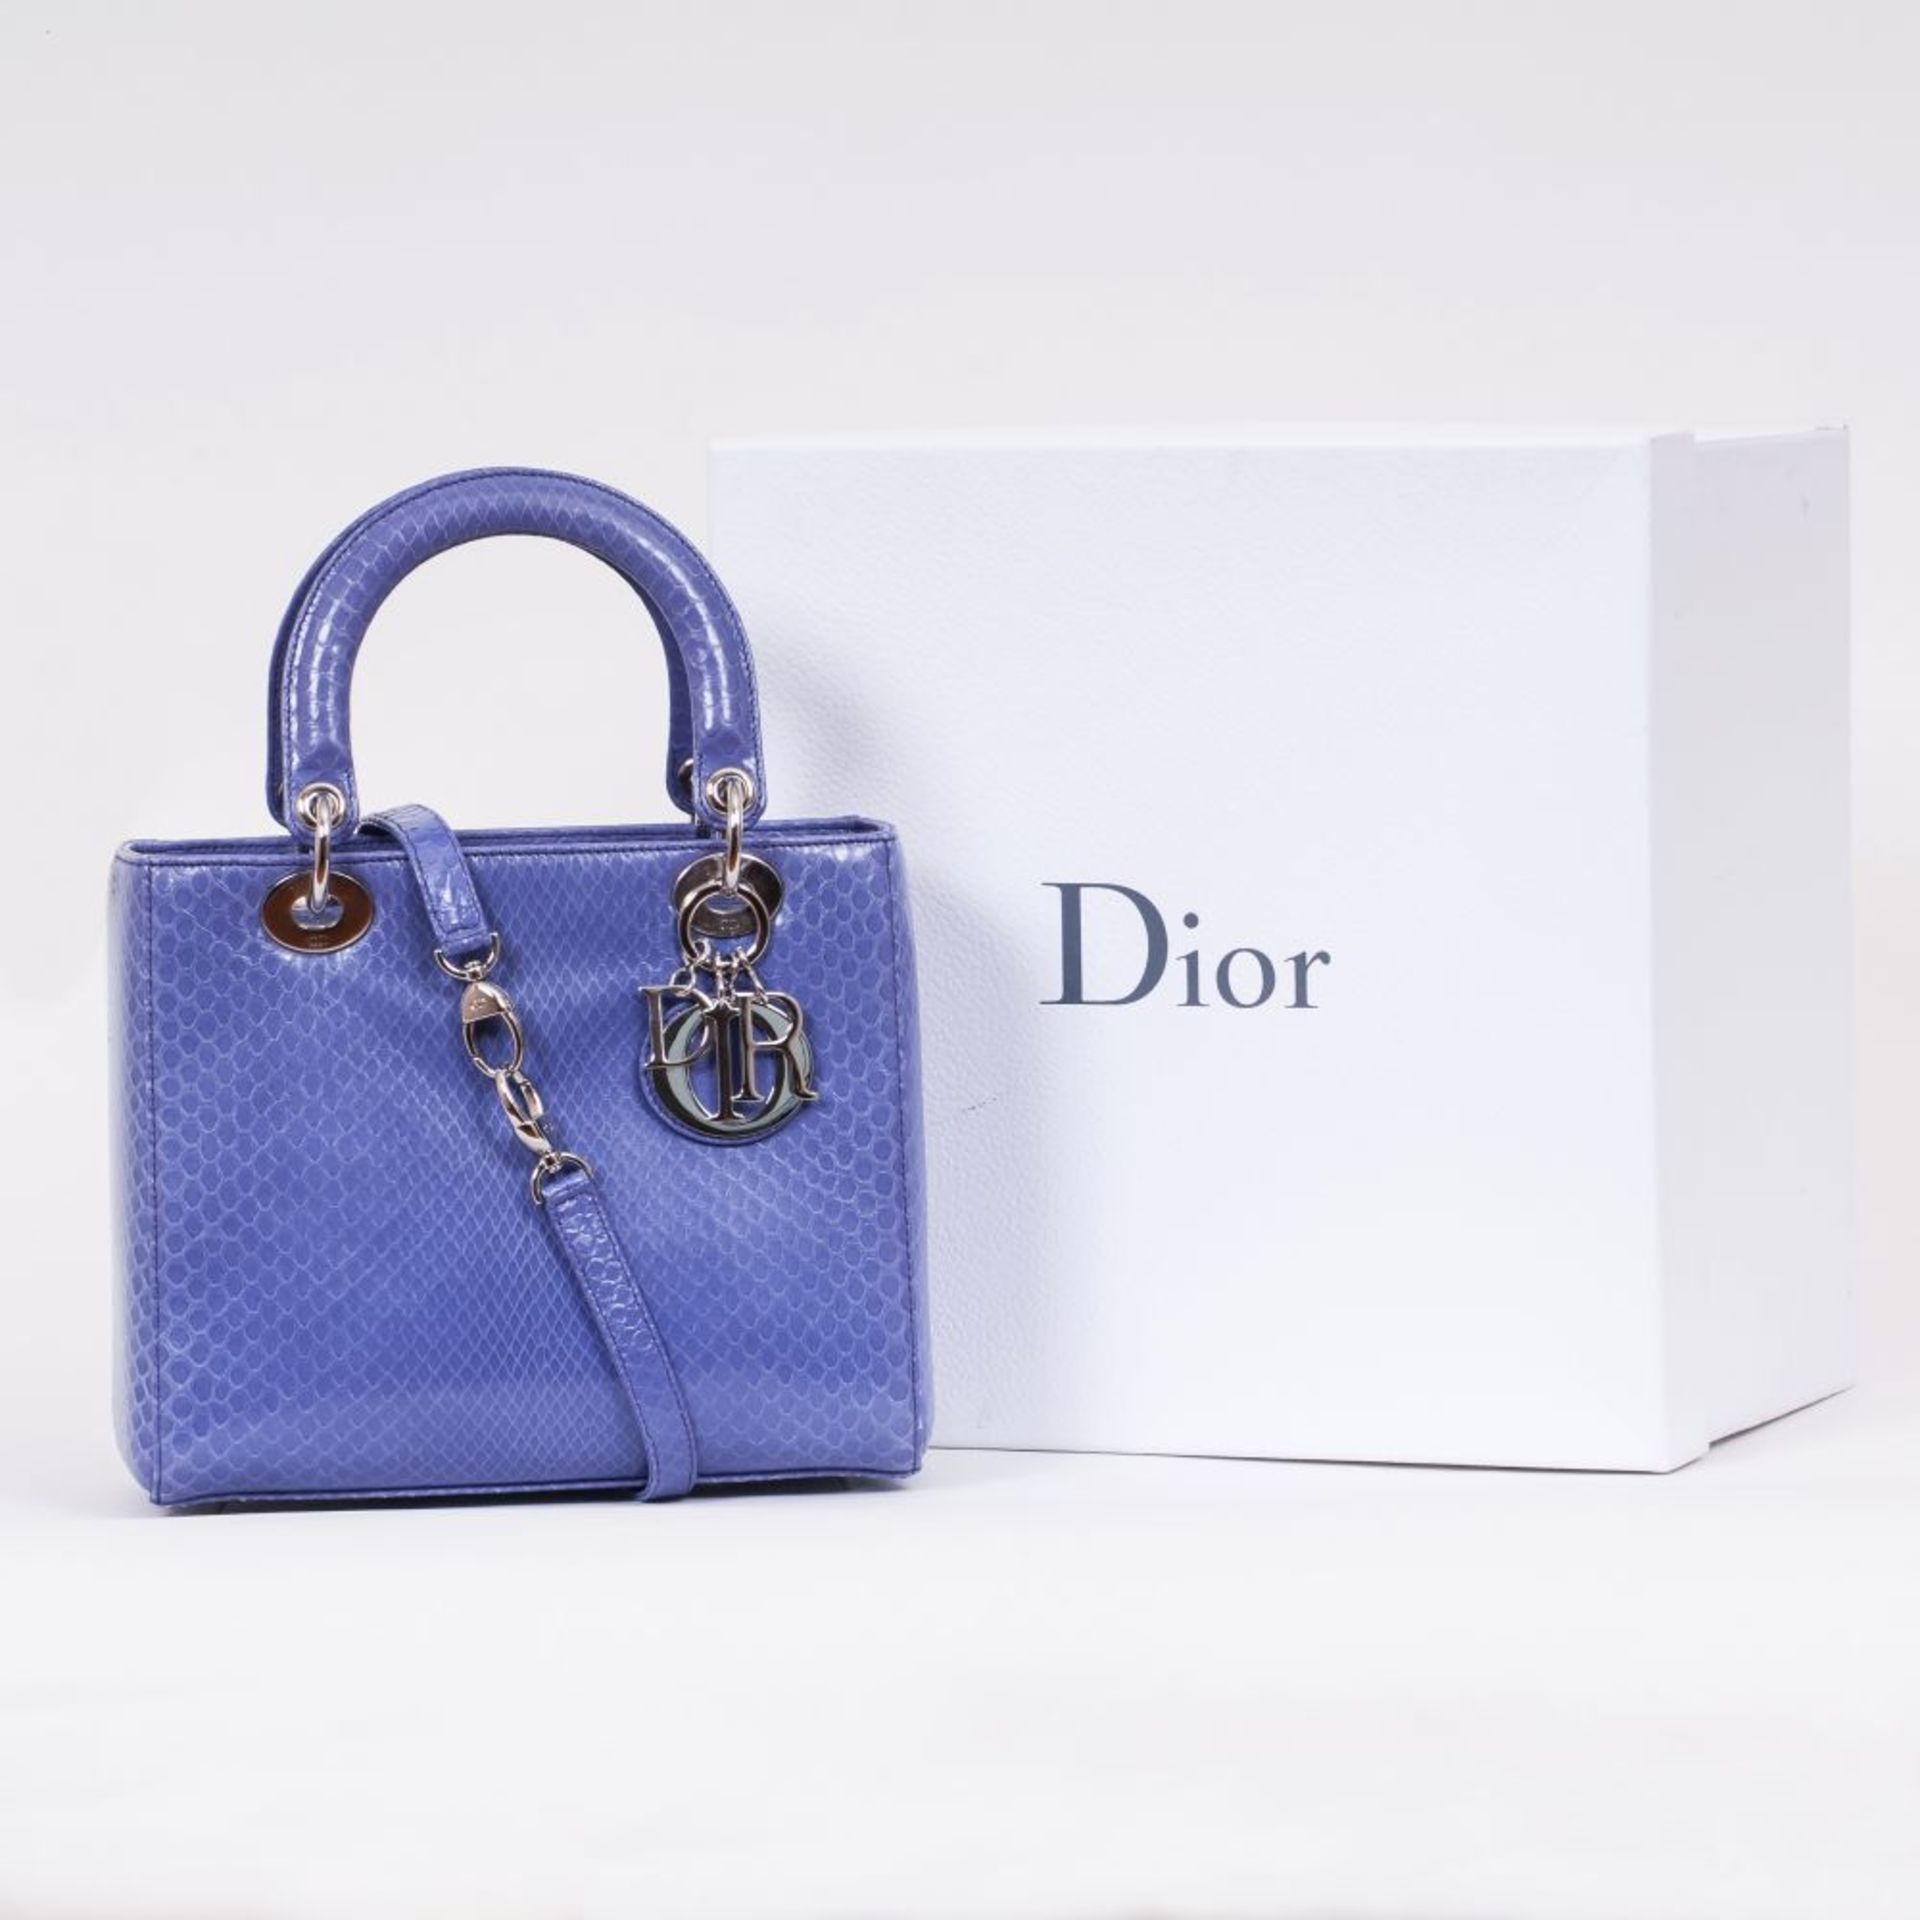 Christian Dior. Lady Dior Bag Python Blue. - Image 2 of 2